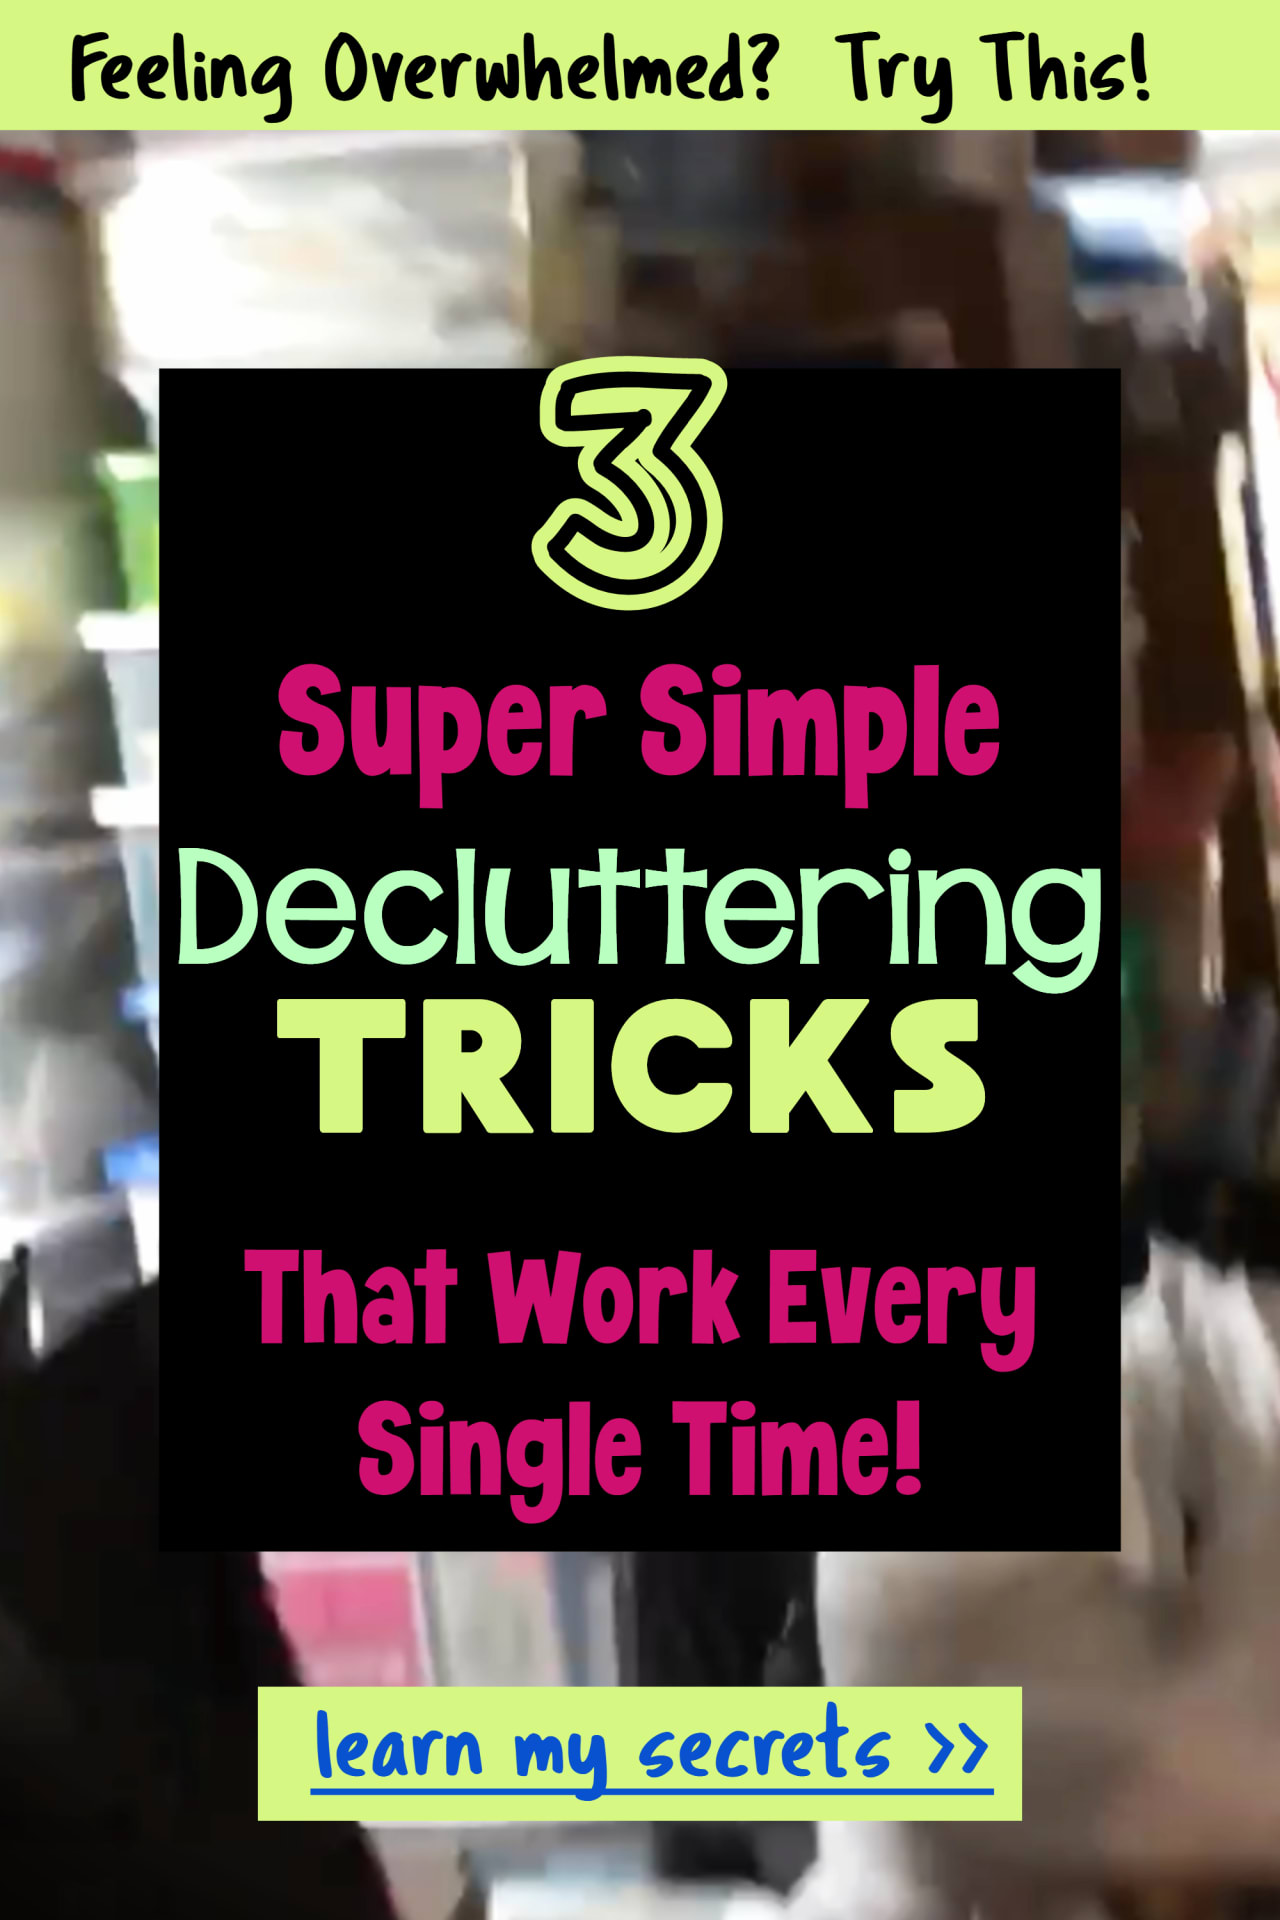 Decluttering Ideas That Work When you're feeling overwhelmed - where to START decluttering is so hard if you're overwhelmed try my 3 decluttering tips they really work!